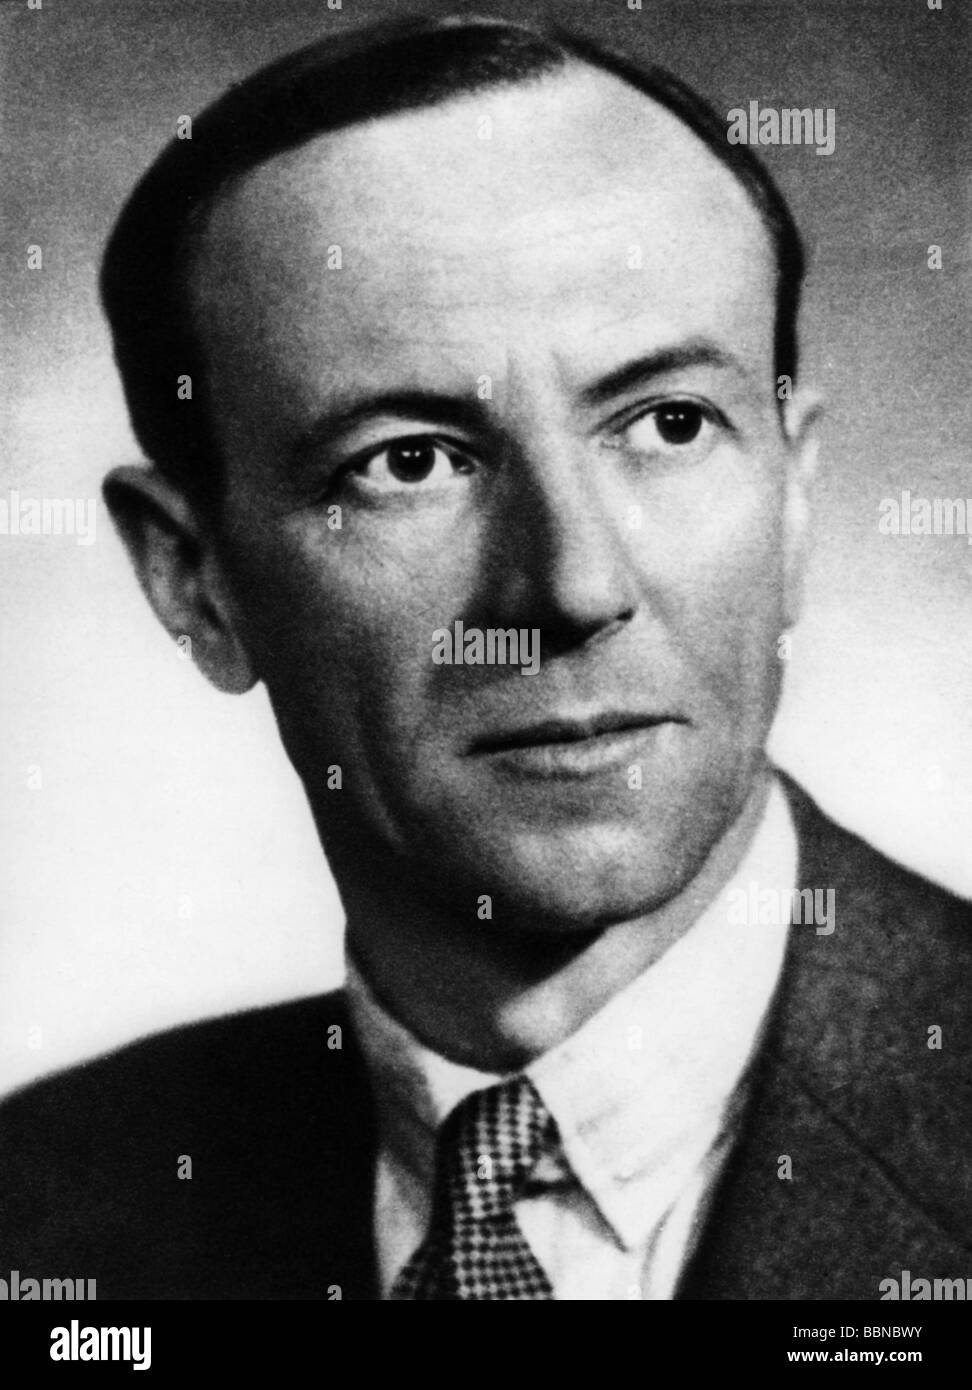 Chadwick, James, 20.10.1891 - 24.7.1974, British scientist (physicist), portrait, 1930s, 30s, Additional-Rights - Stock Image